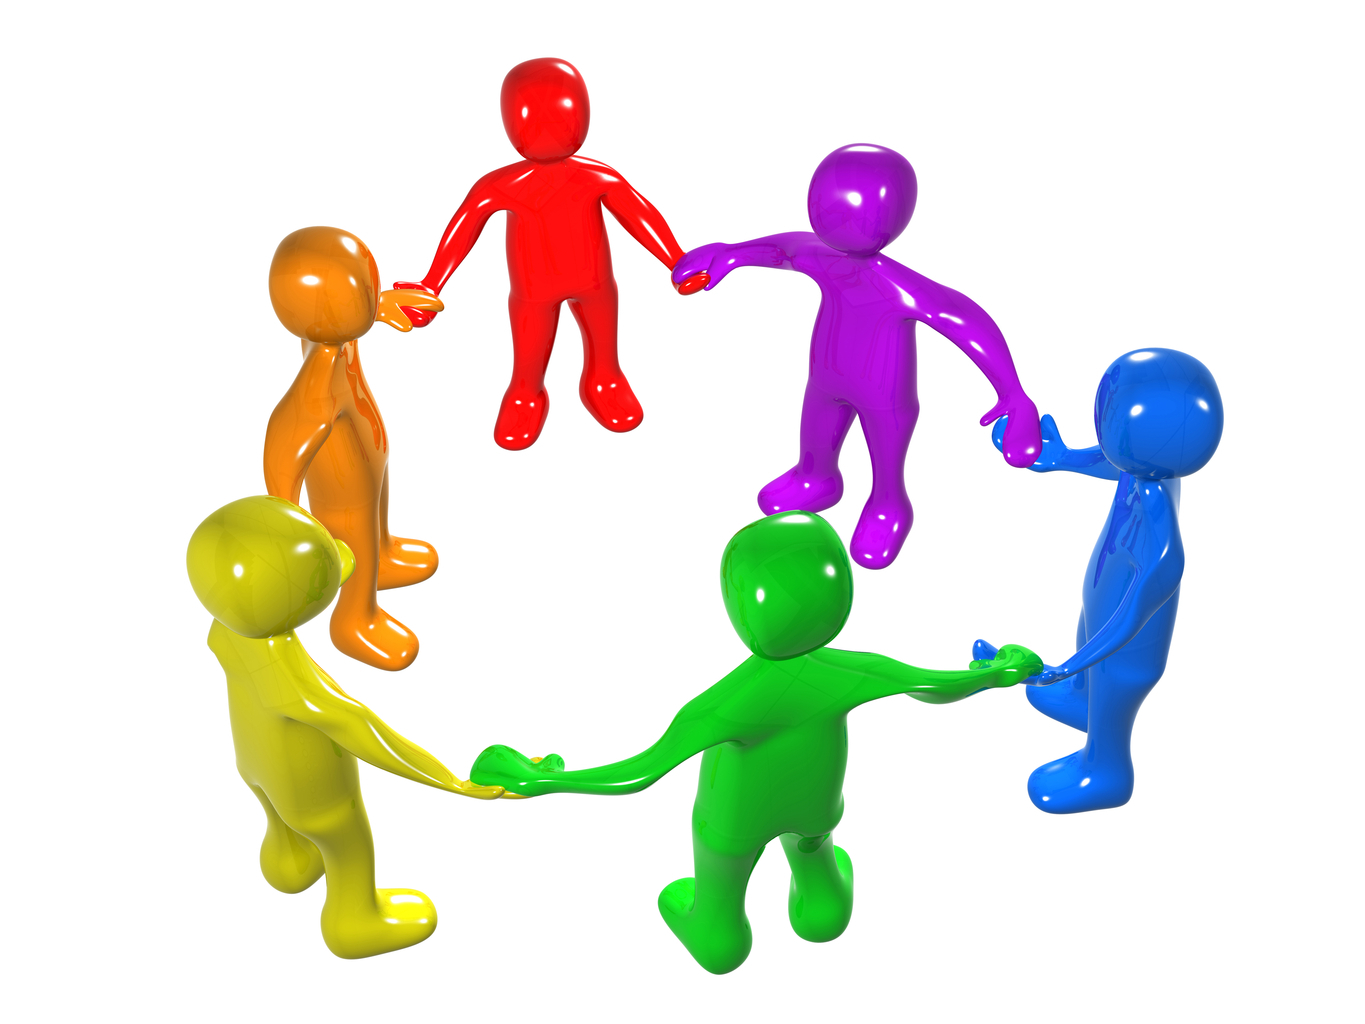 division and teamwork team However, the team should be encouraged to help one another when needed conflict resolution  any tension or conflict should be resolved as quickly as possible to prevent communication breakdowns and a division of team members.